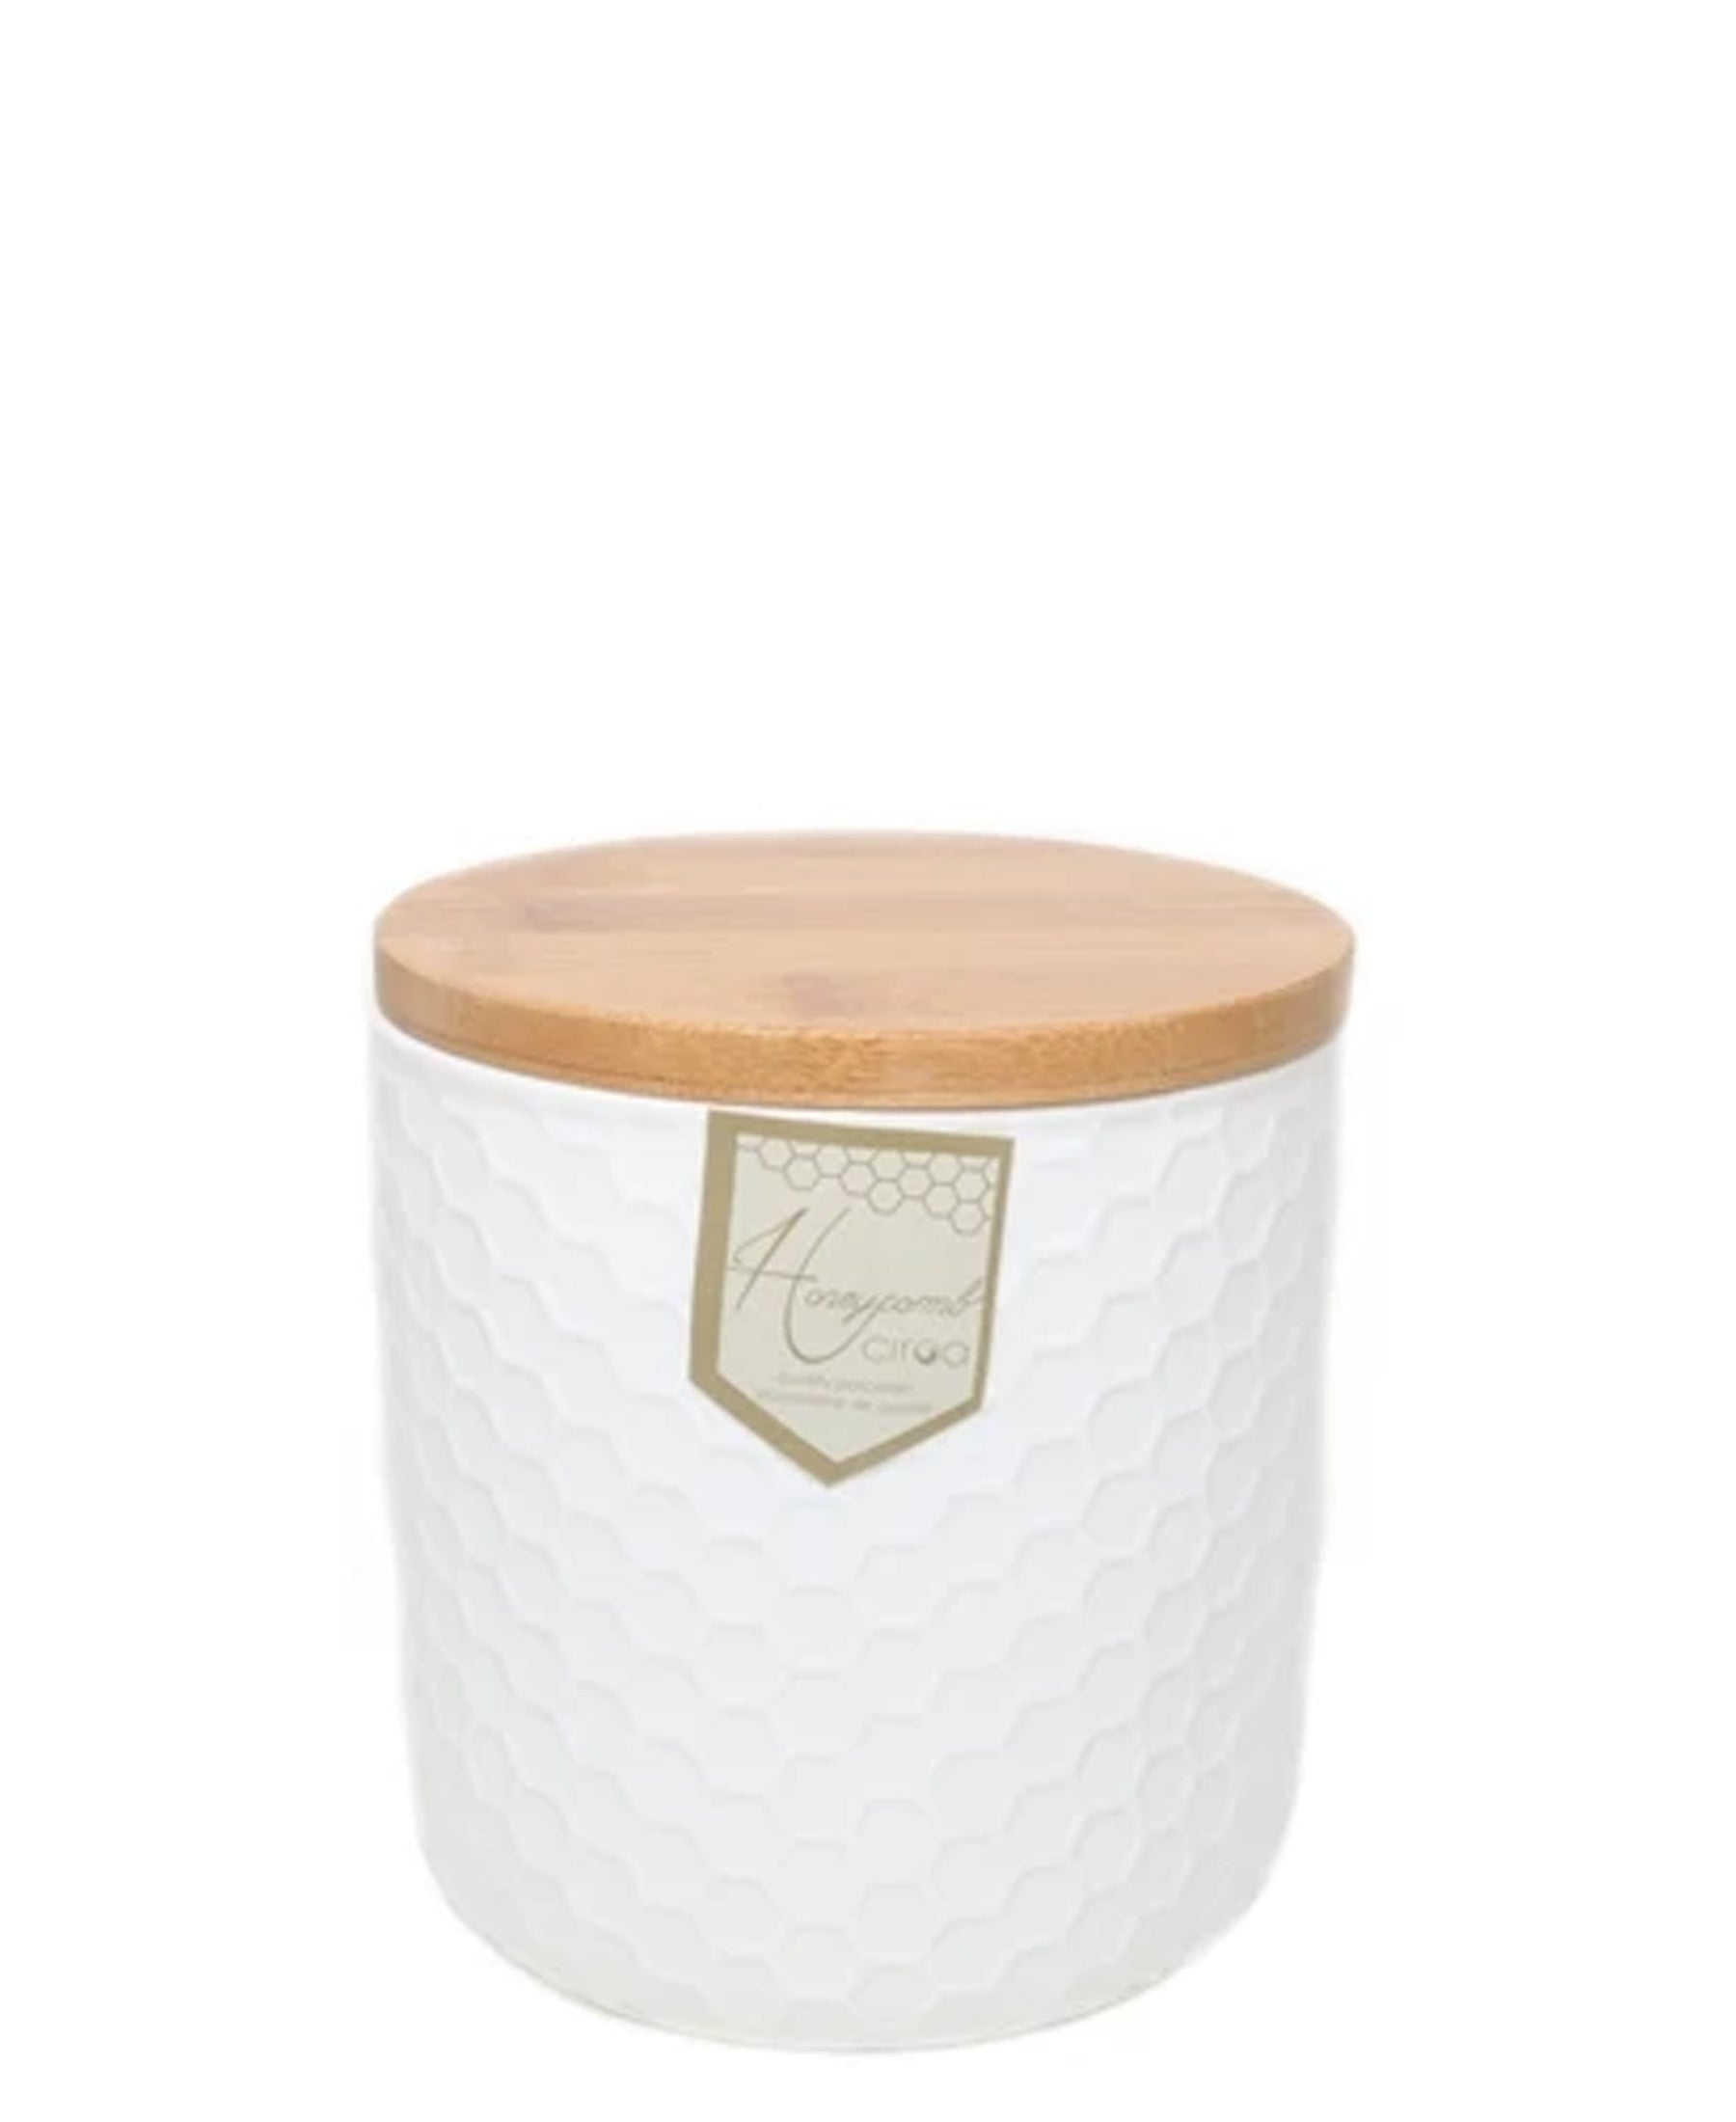 Ciroa Honeycomb Storage jar Large